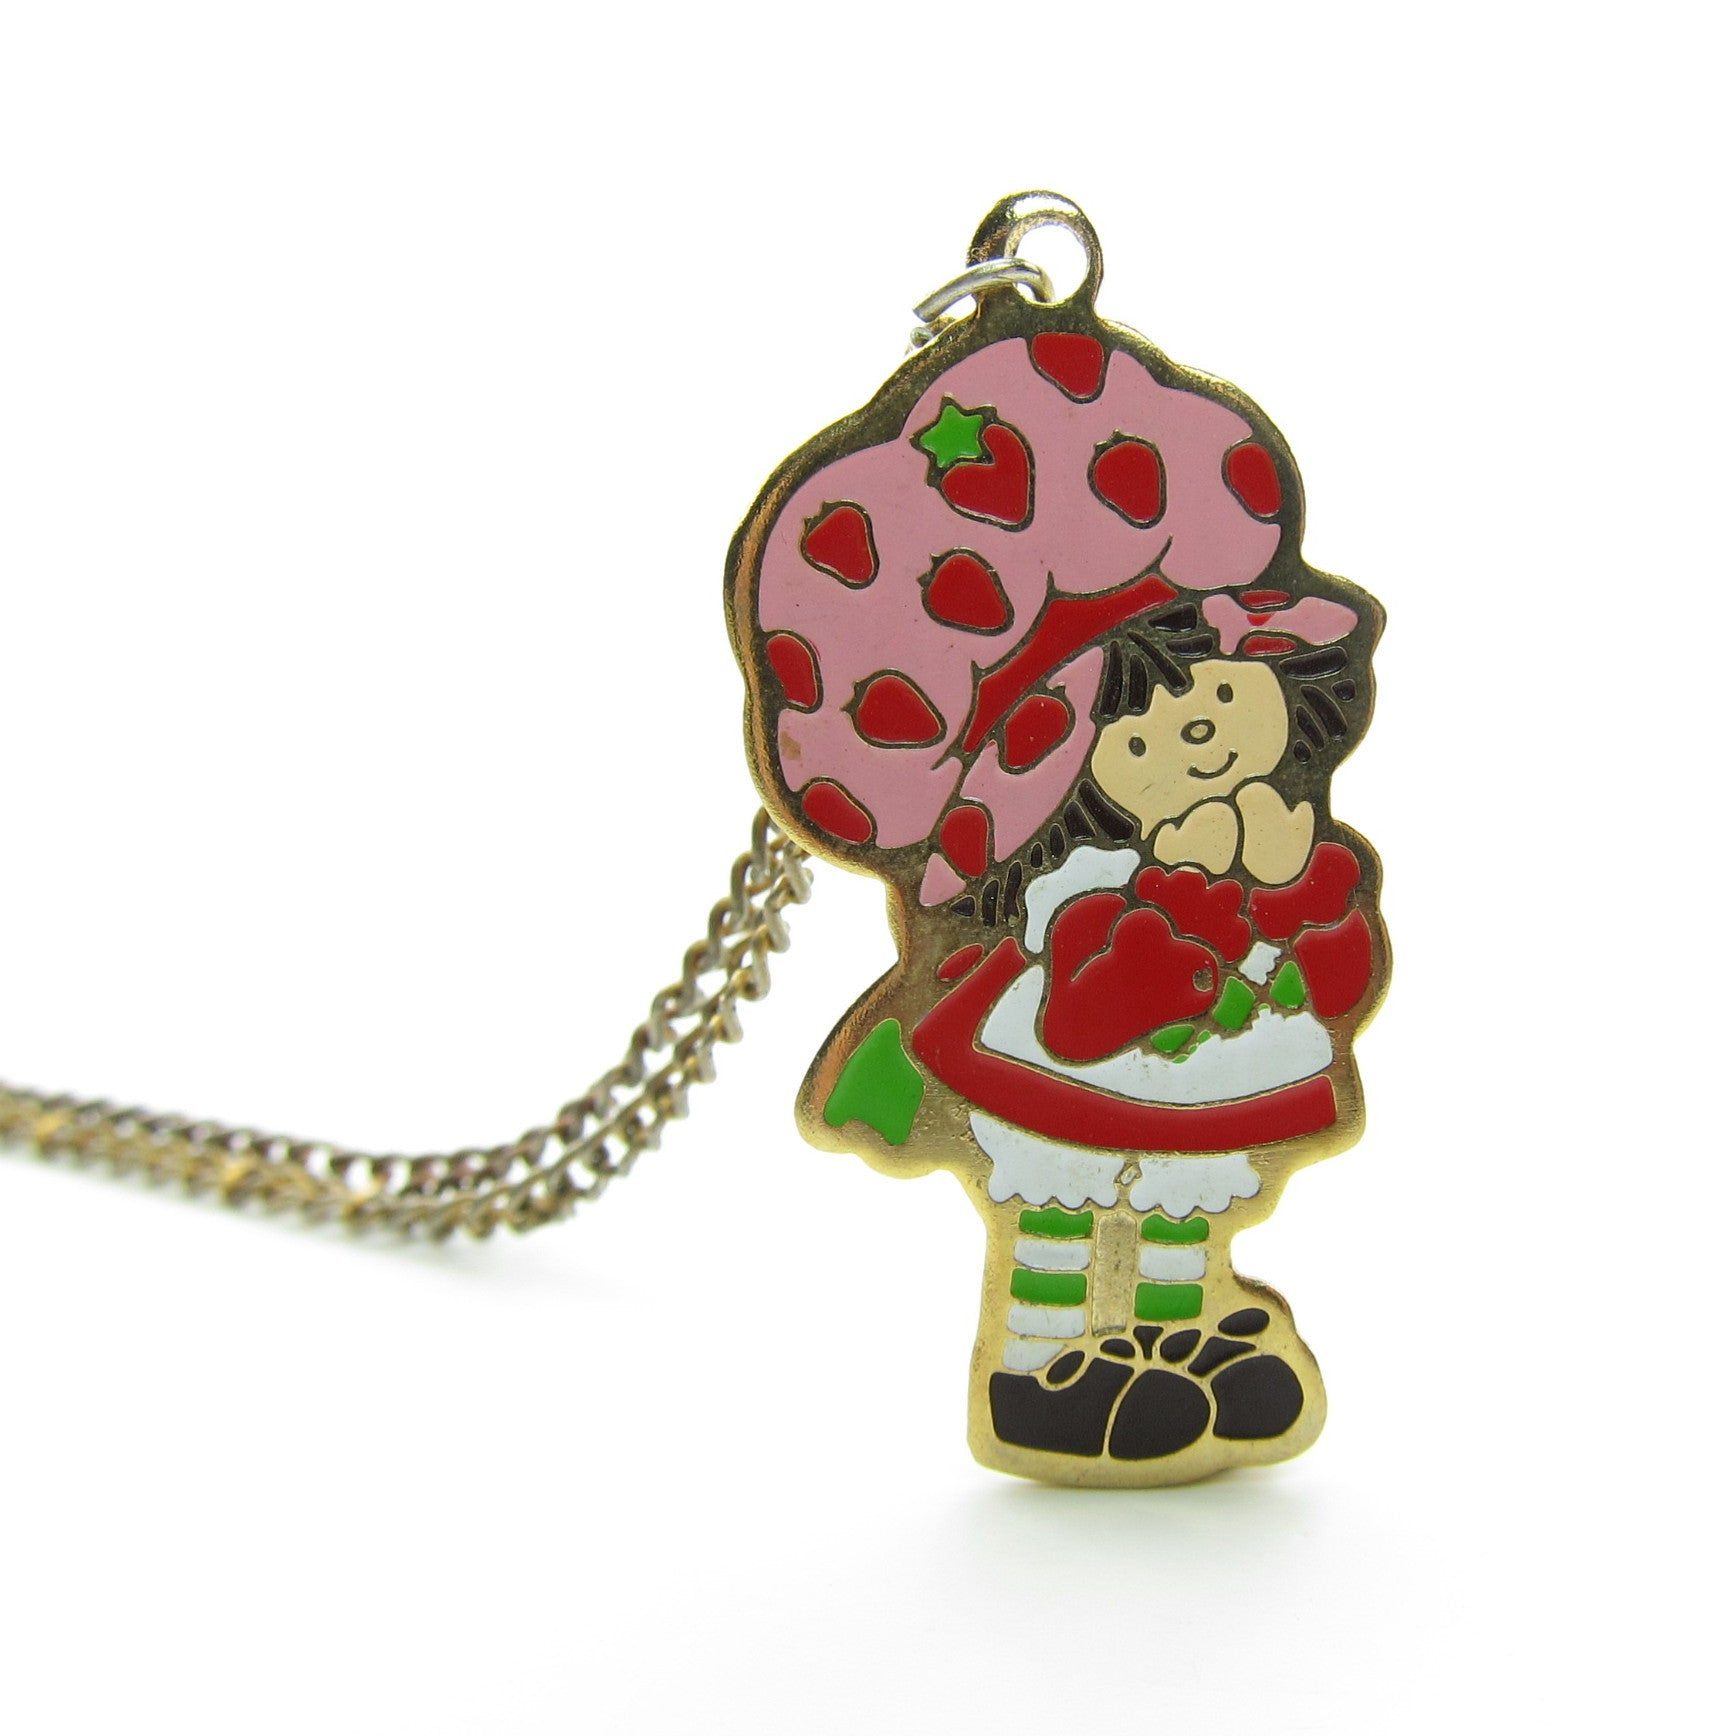 Strawberry Shortcake pendant necklace on chain